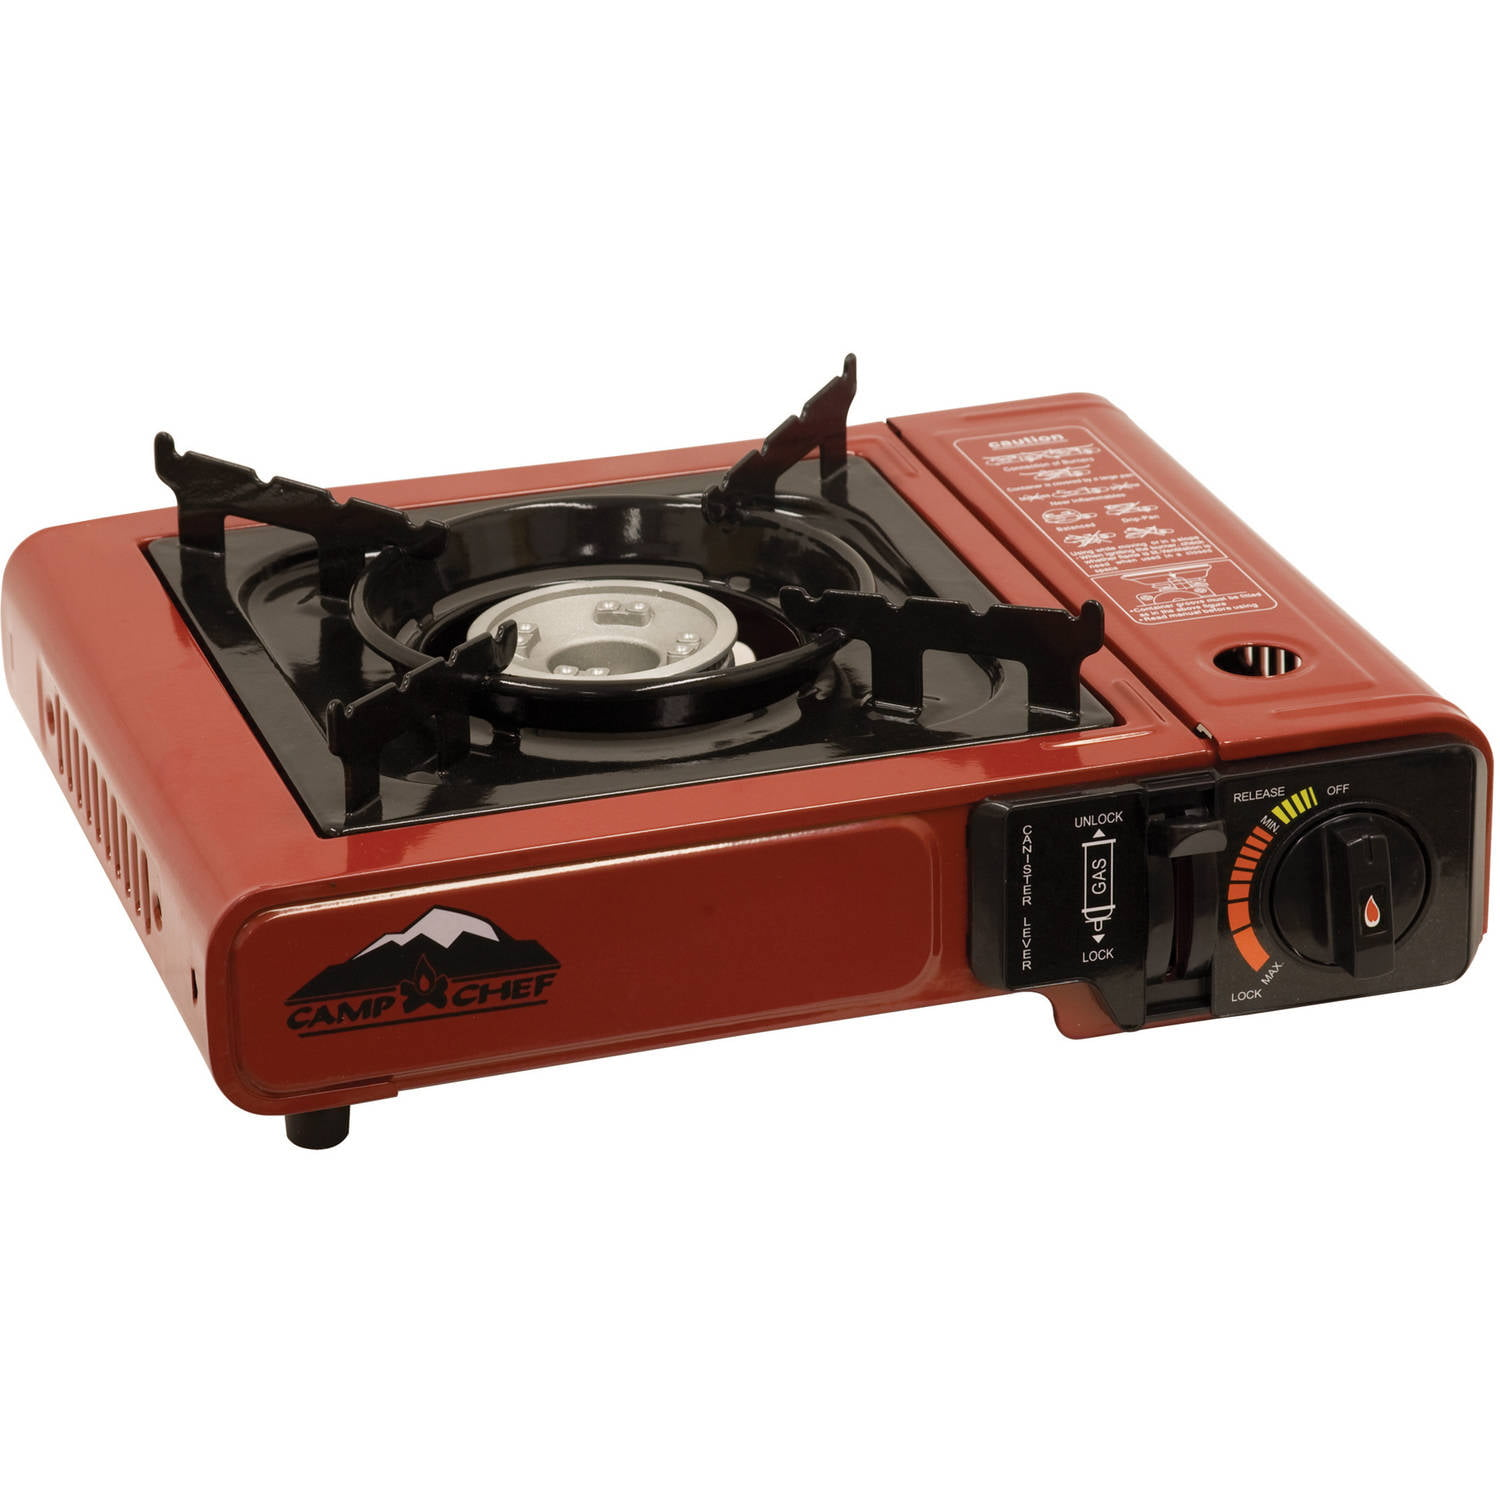 Beau Camp Chef Butane Matchless Ignition Single Burner Camp Stove   Walmart.com